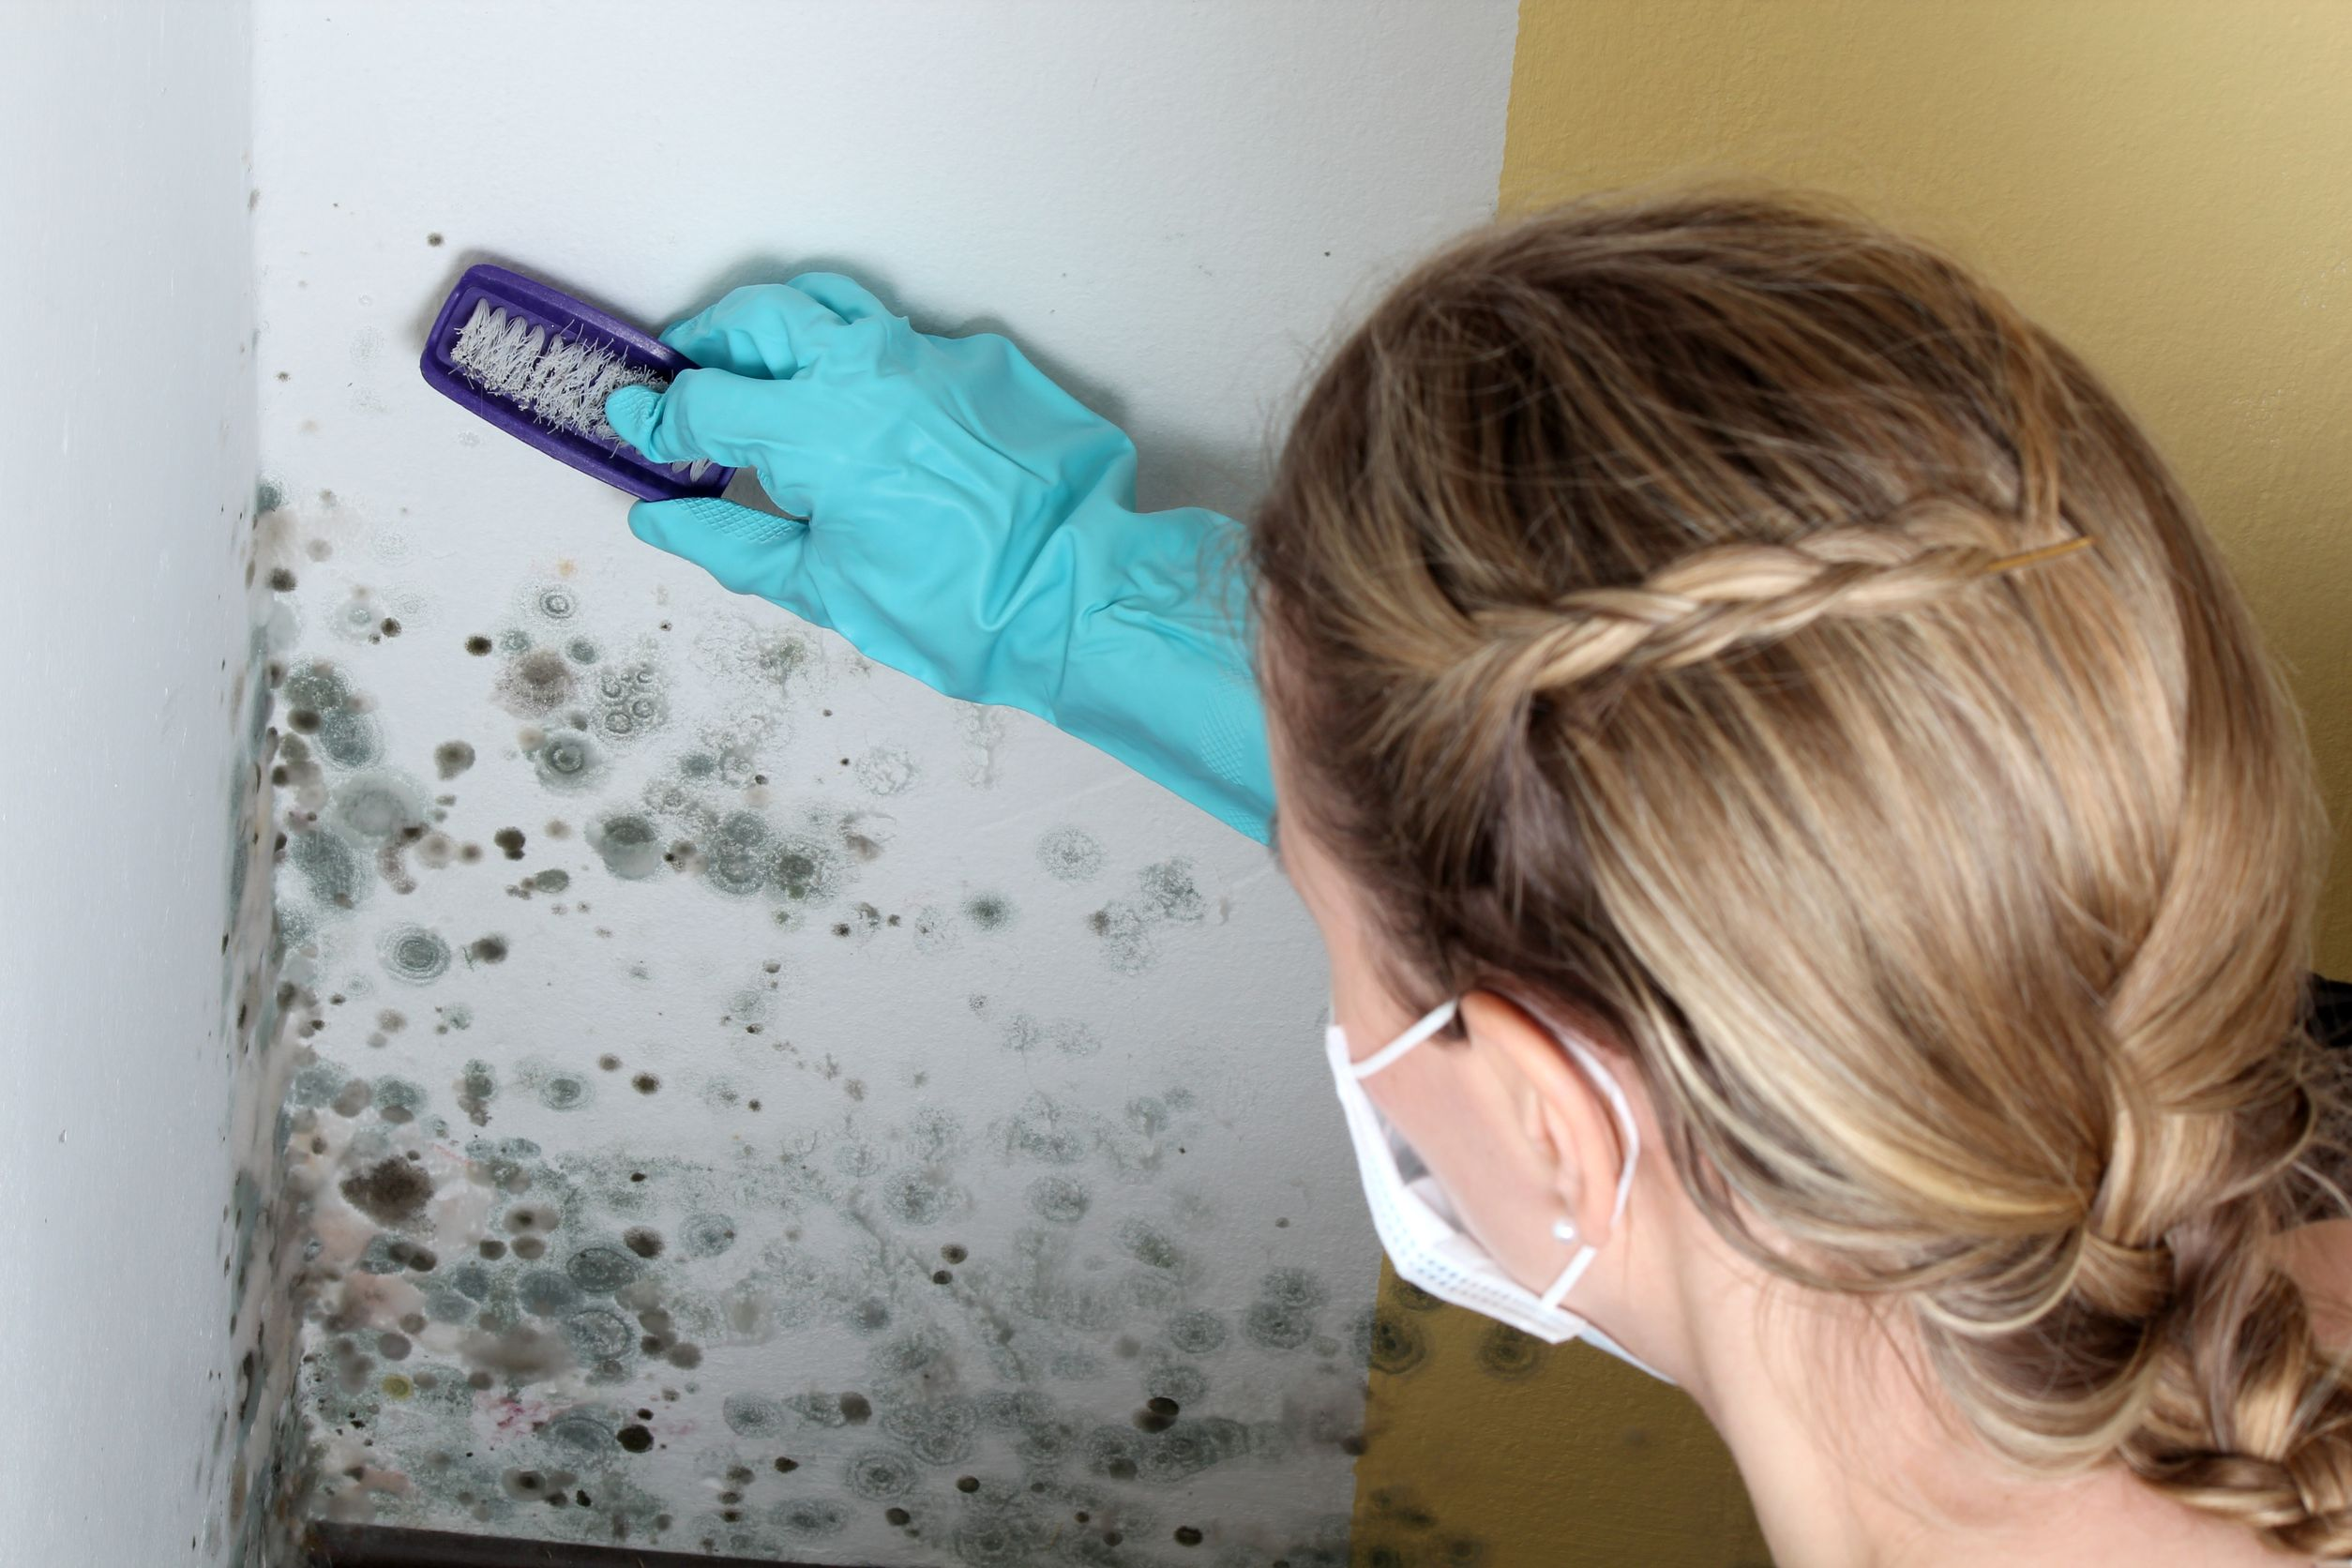 Tips for Ridding Your Home of Mold With St. Clair Remediation